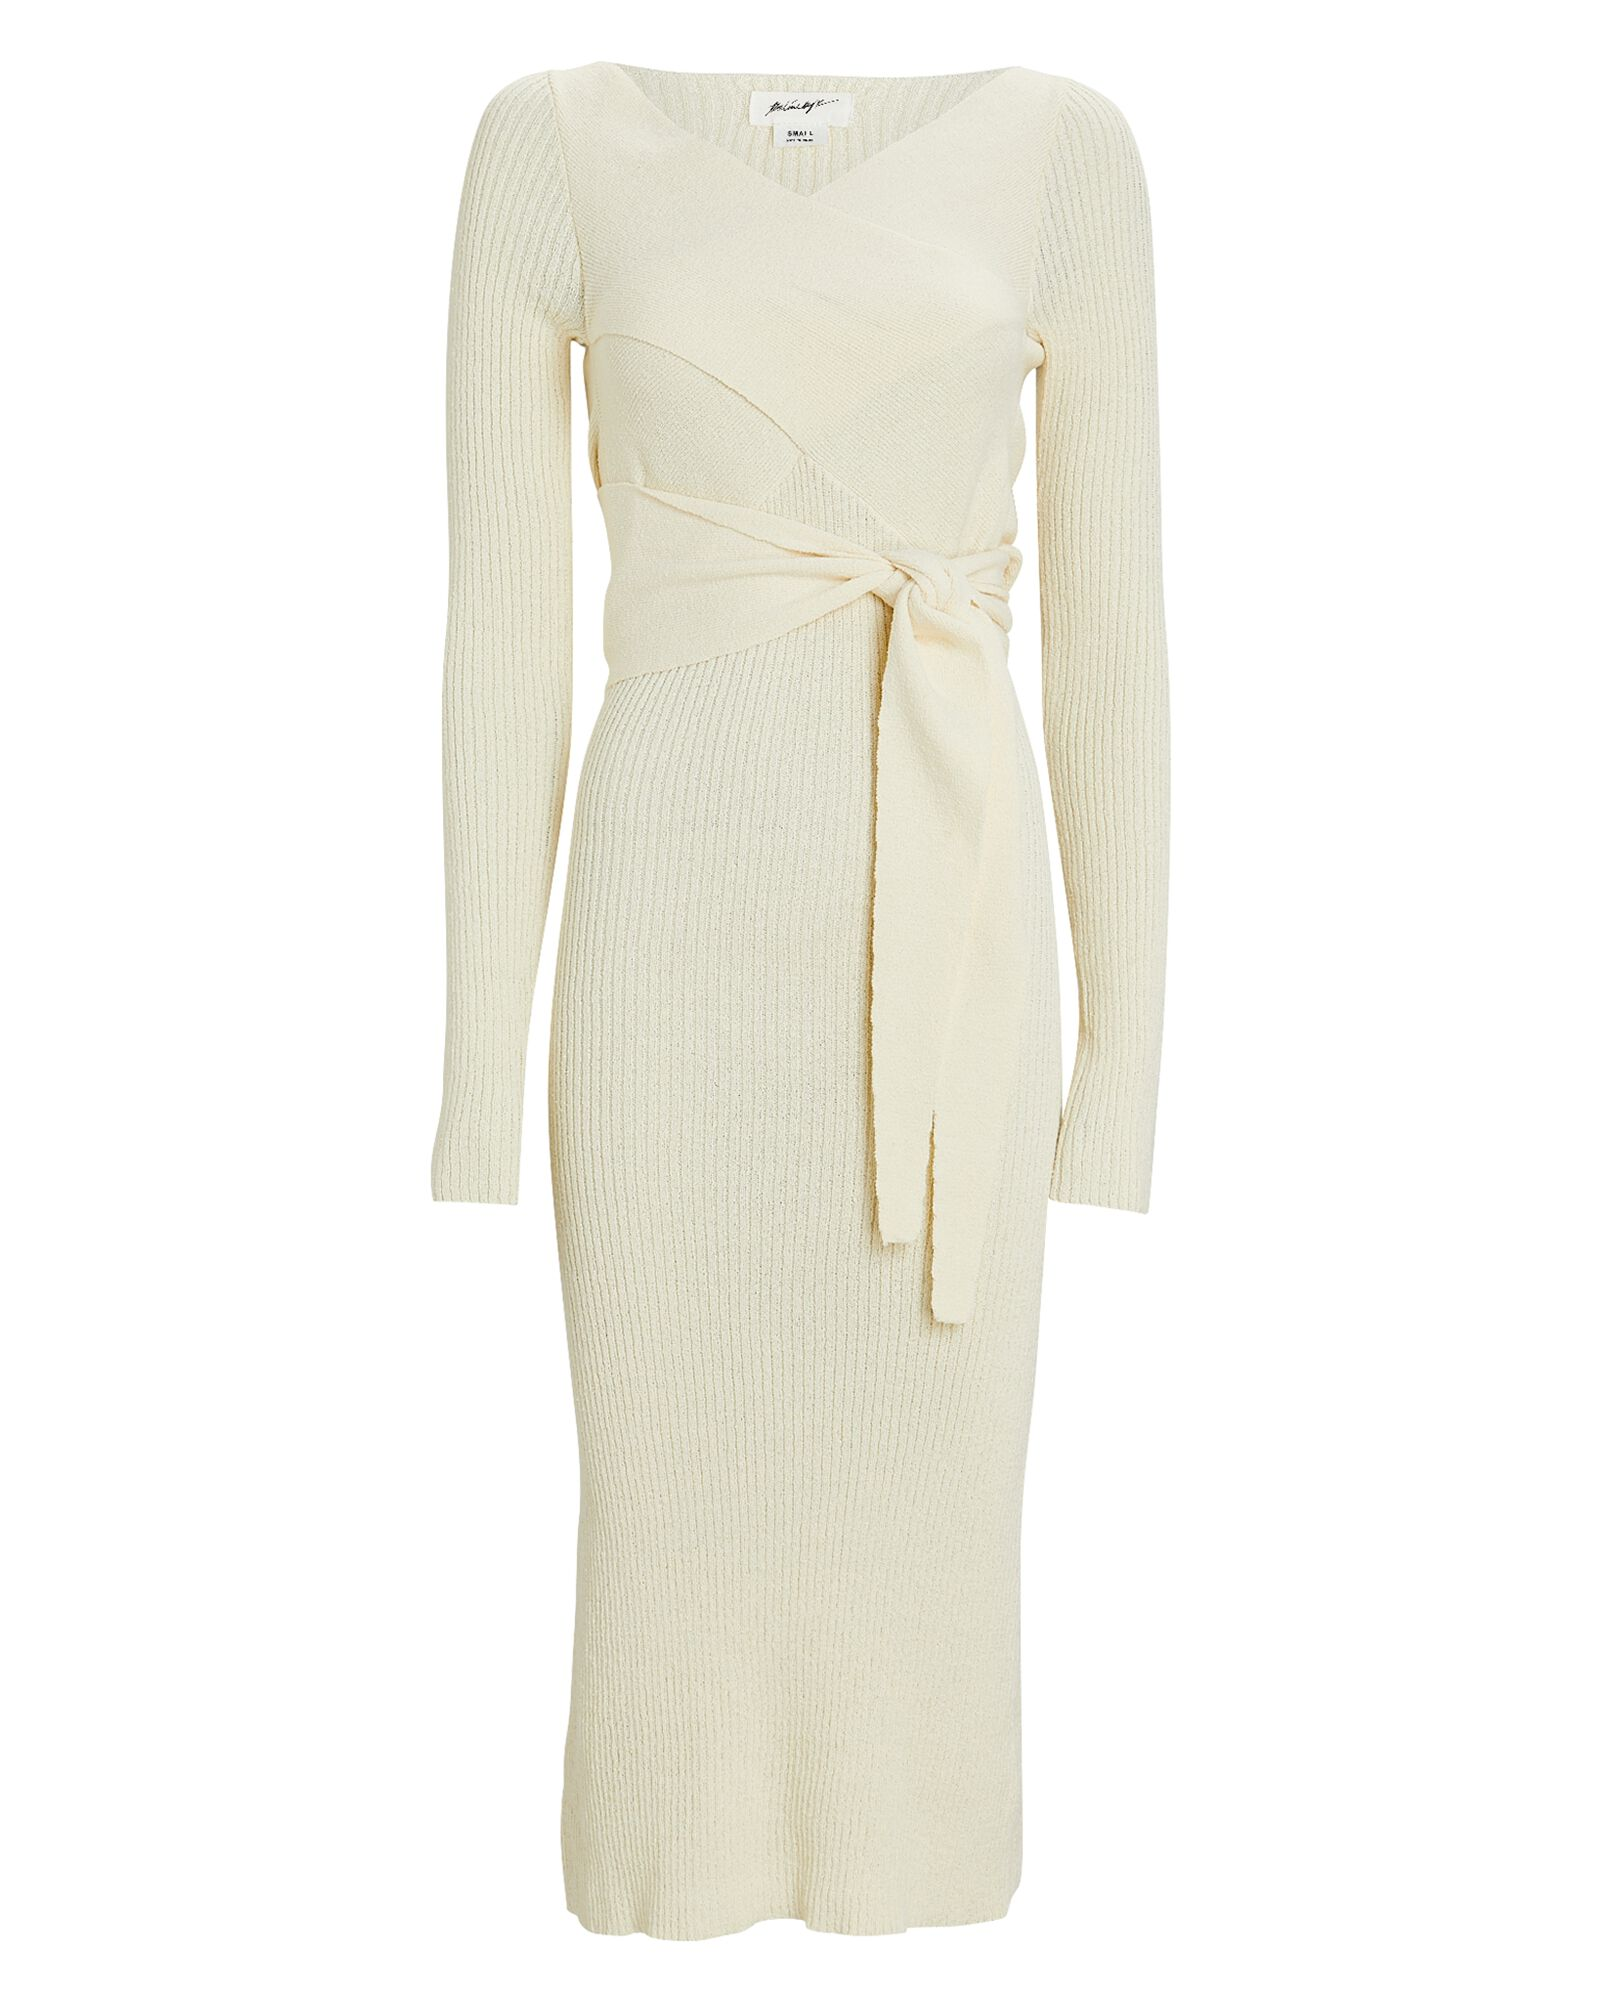 Kane Rib Knit Midi Dress, IVORY, hi-res